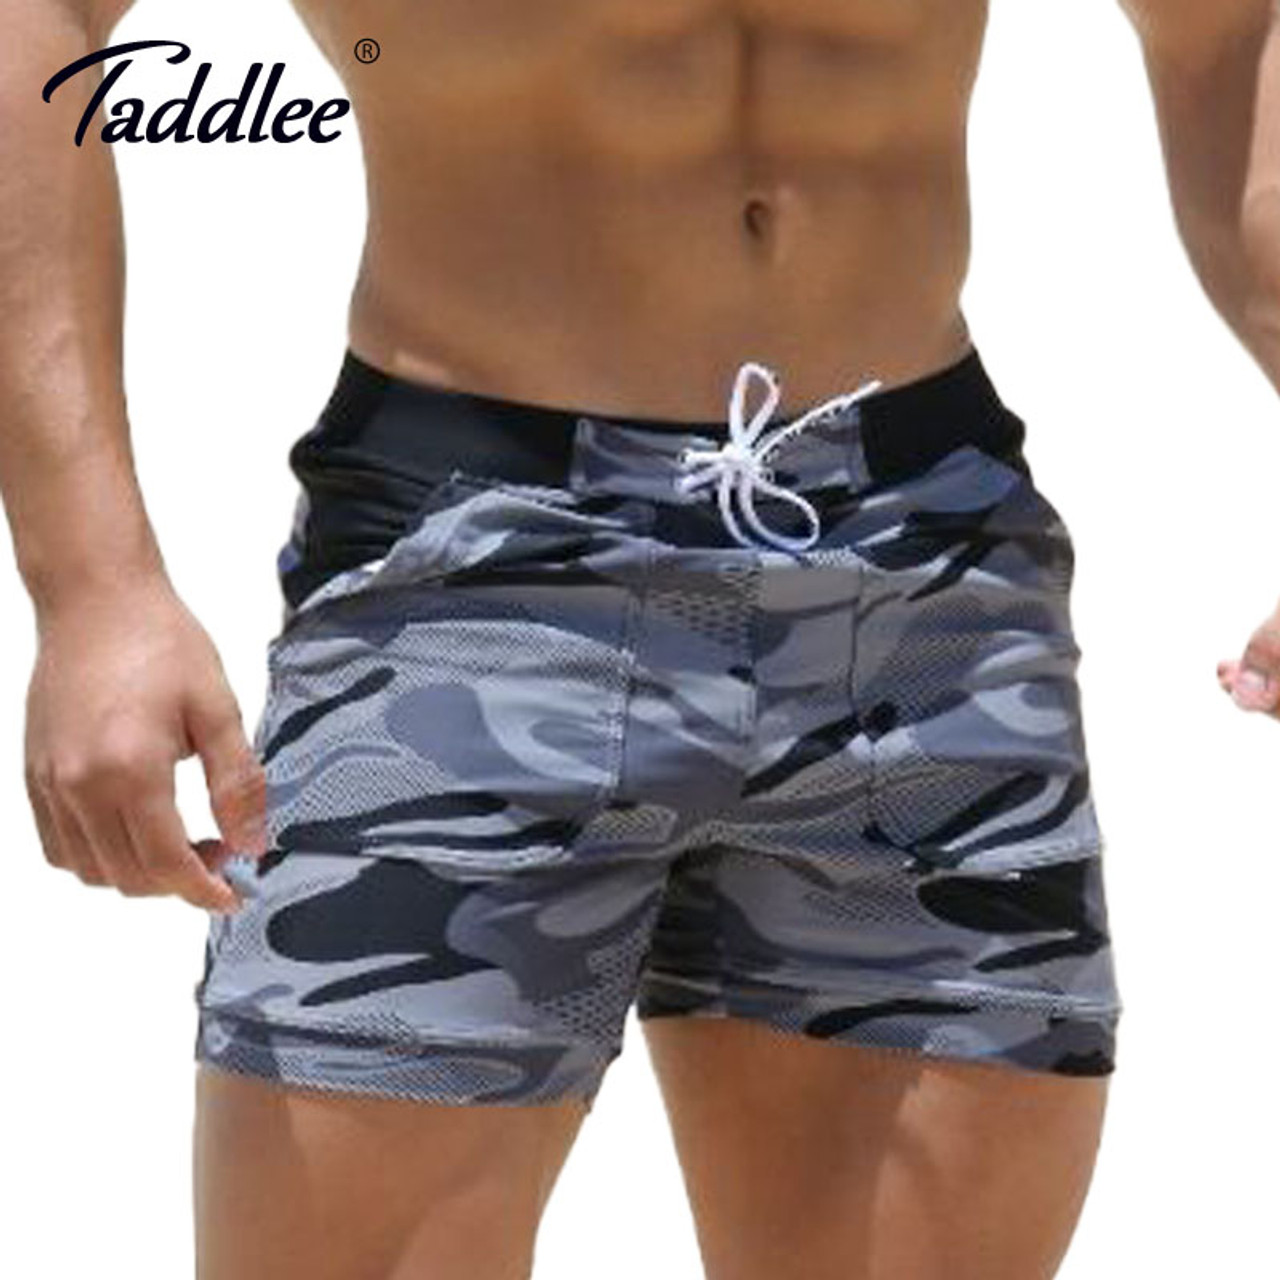 f91007976a8 Taddlee Brand Sexy Men's Swimwear Swimsuits Man Plus Big Size XXL Spandex  Beach Long Board Shorts Boxer High Rise Cut Trunks Men - OnshopDeals.Com